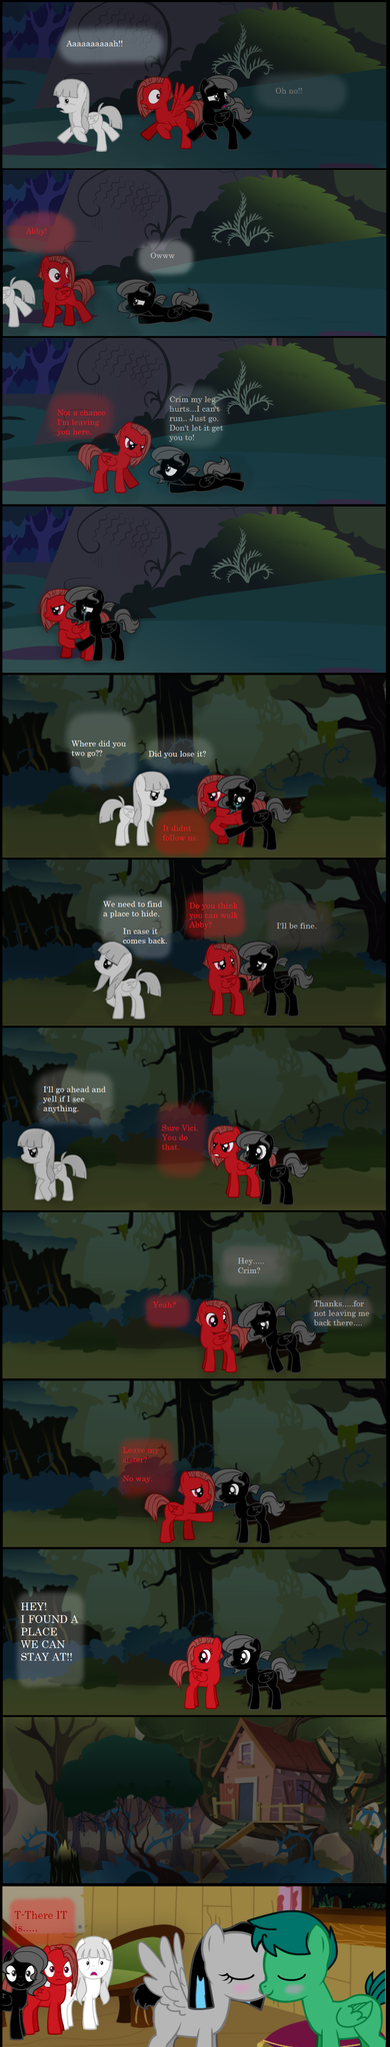 Plume's Daughters part 11 by nemo-kenway